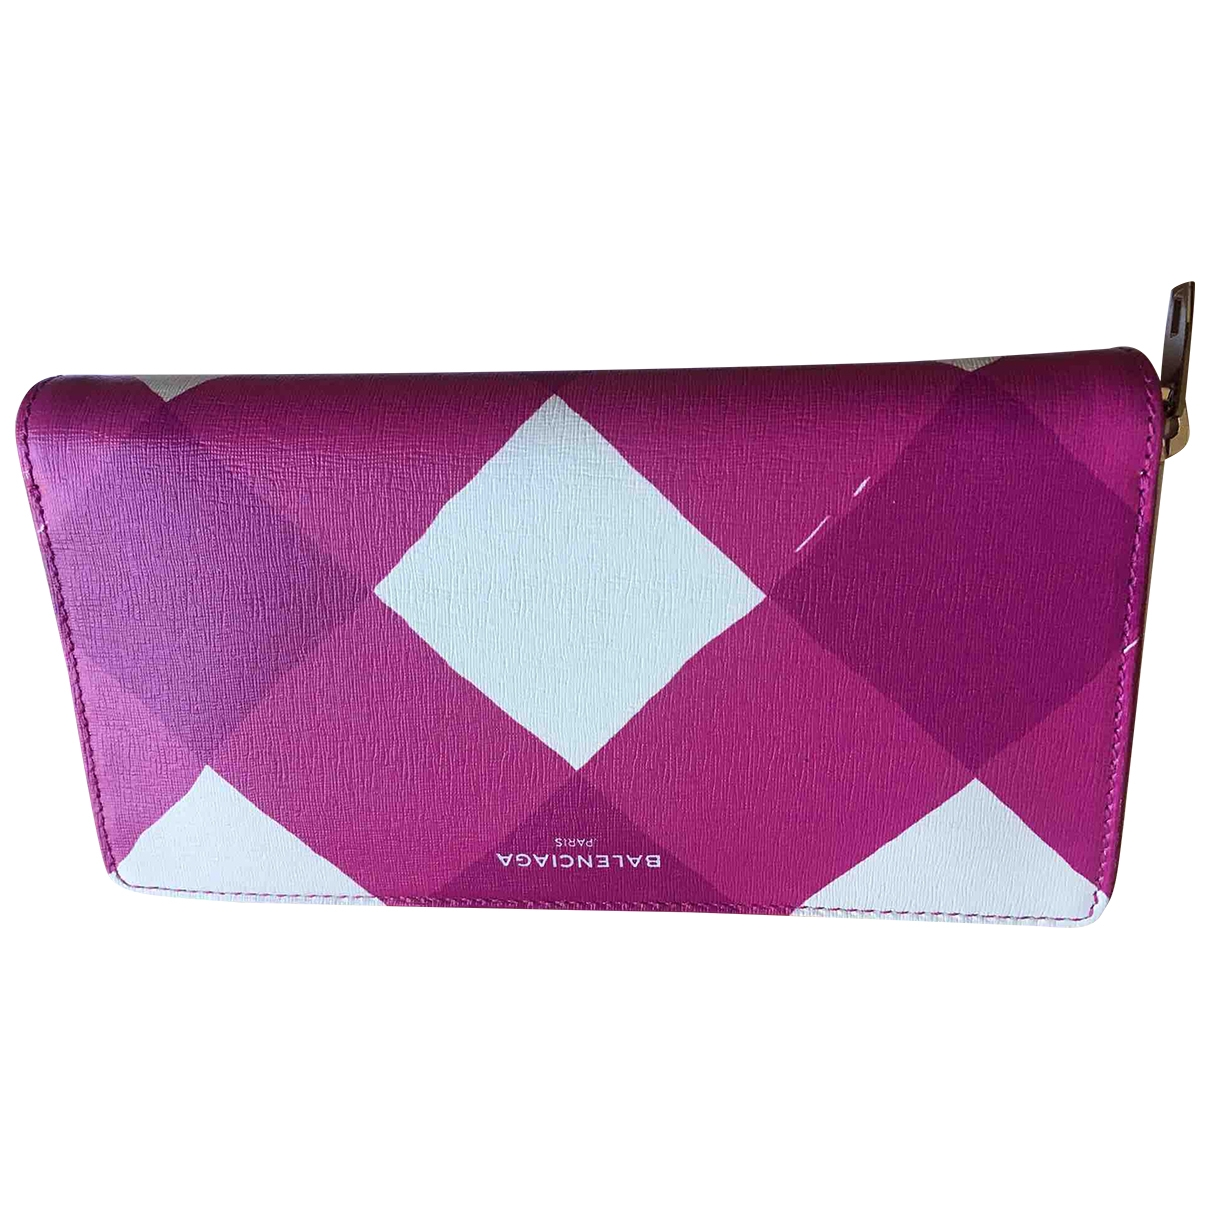 Balenciaga \N Pink Leather wallet for Women \N